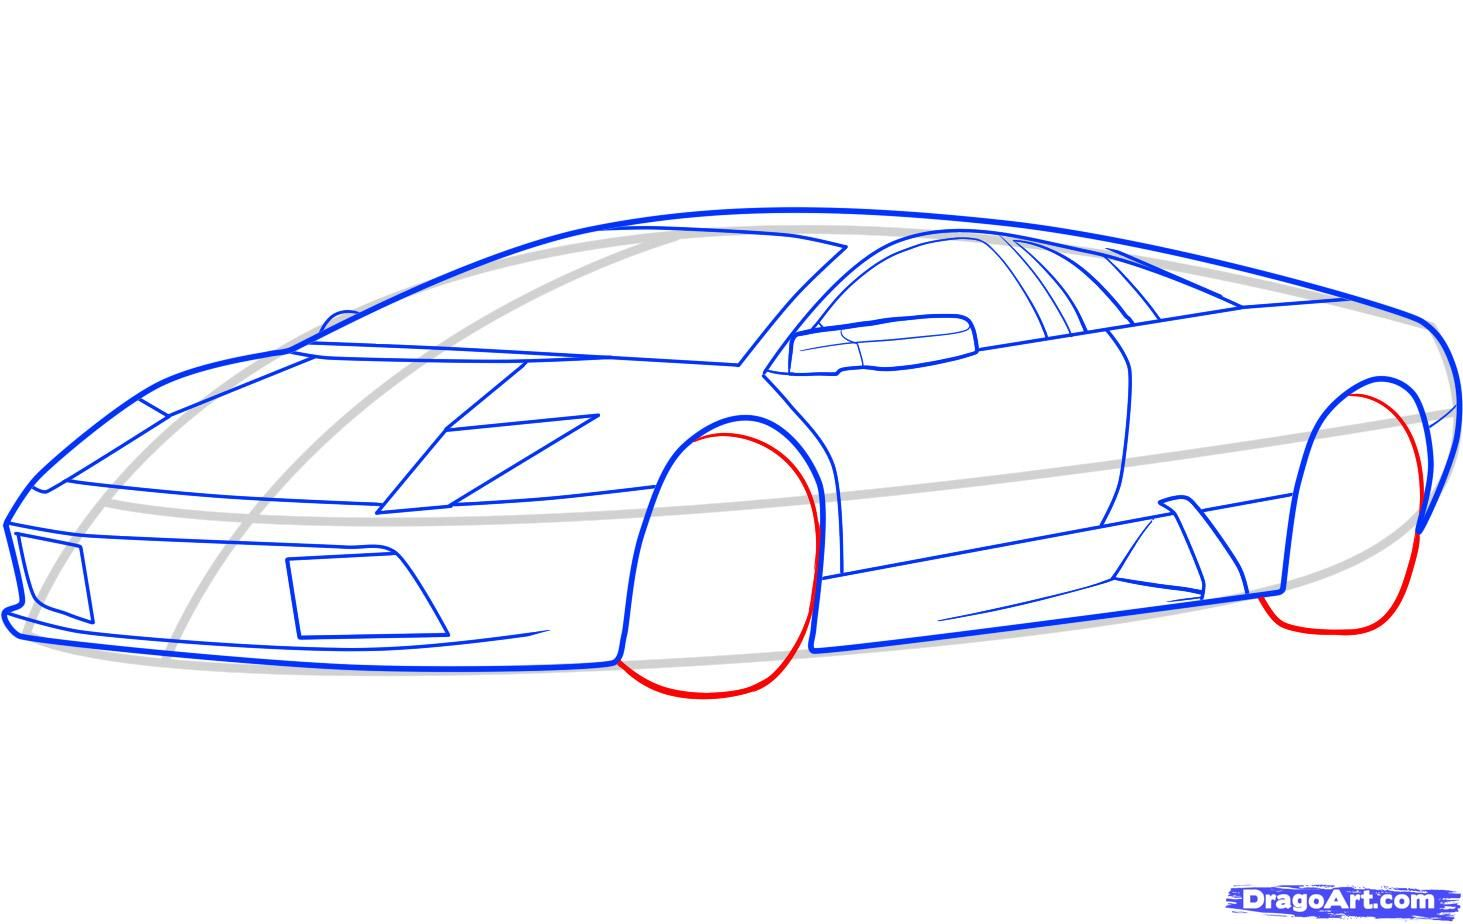 How to draw the Mercedes-Benz car step by step 7